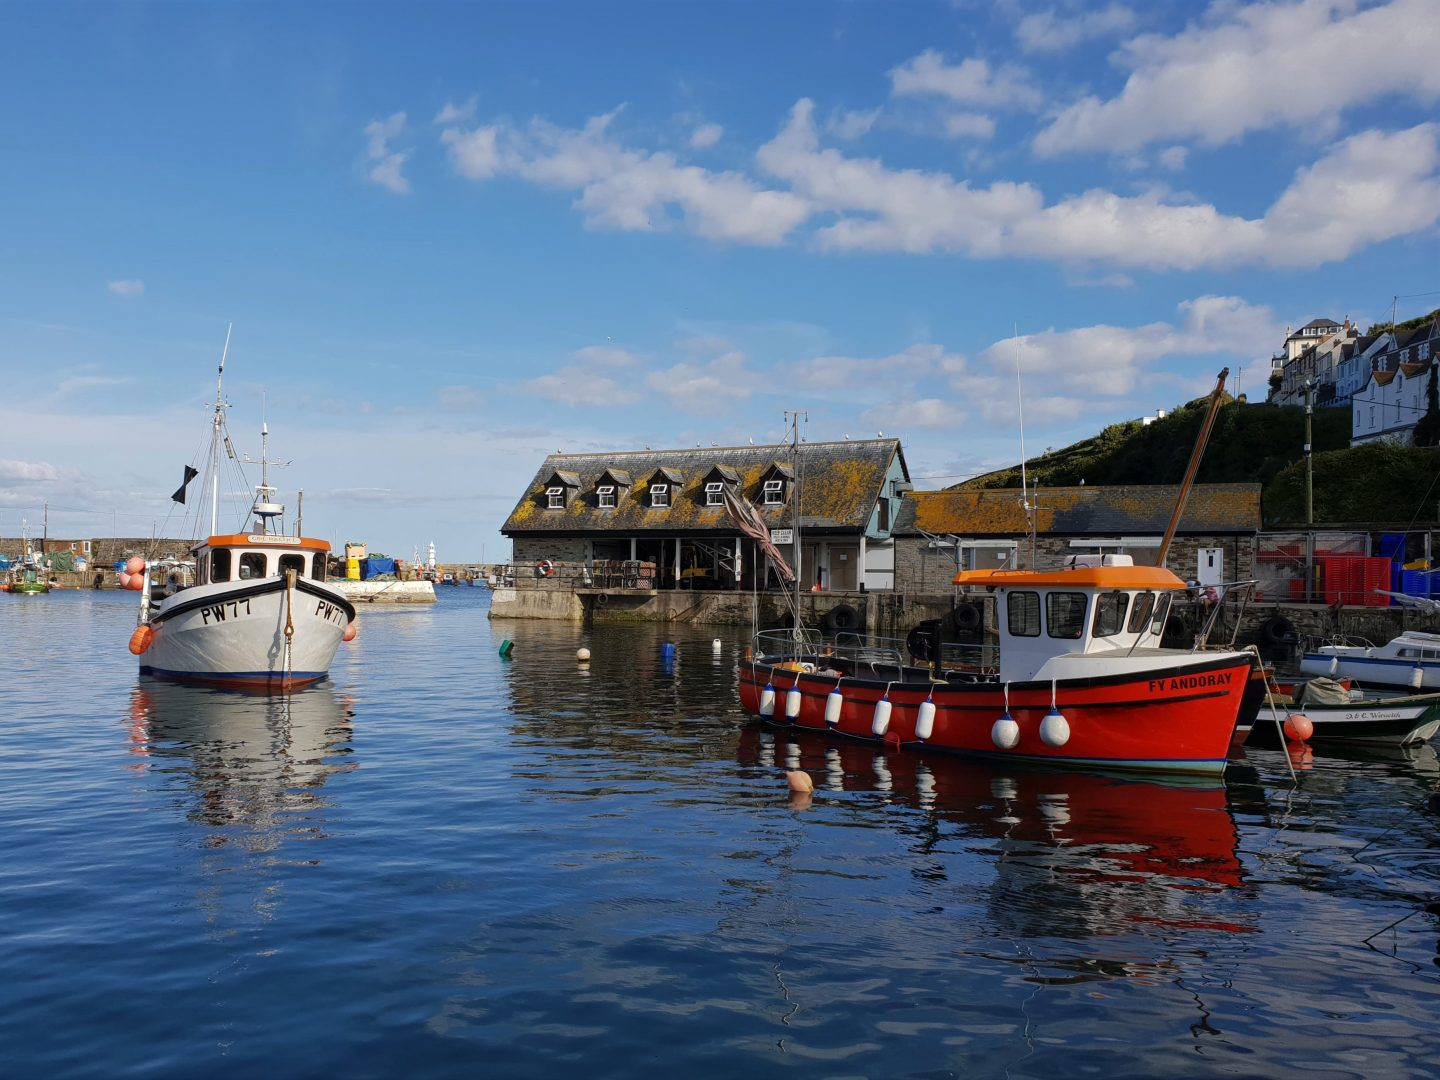 Boats in Mevagissey, Cornwall